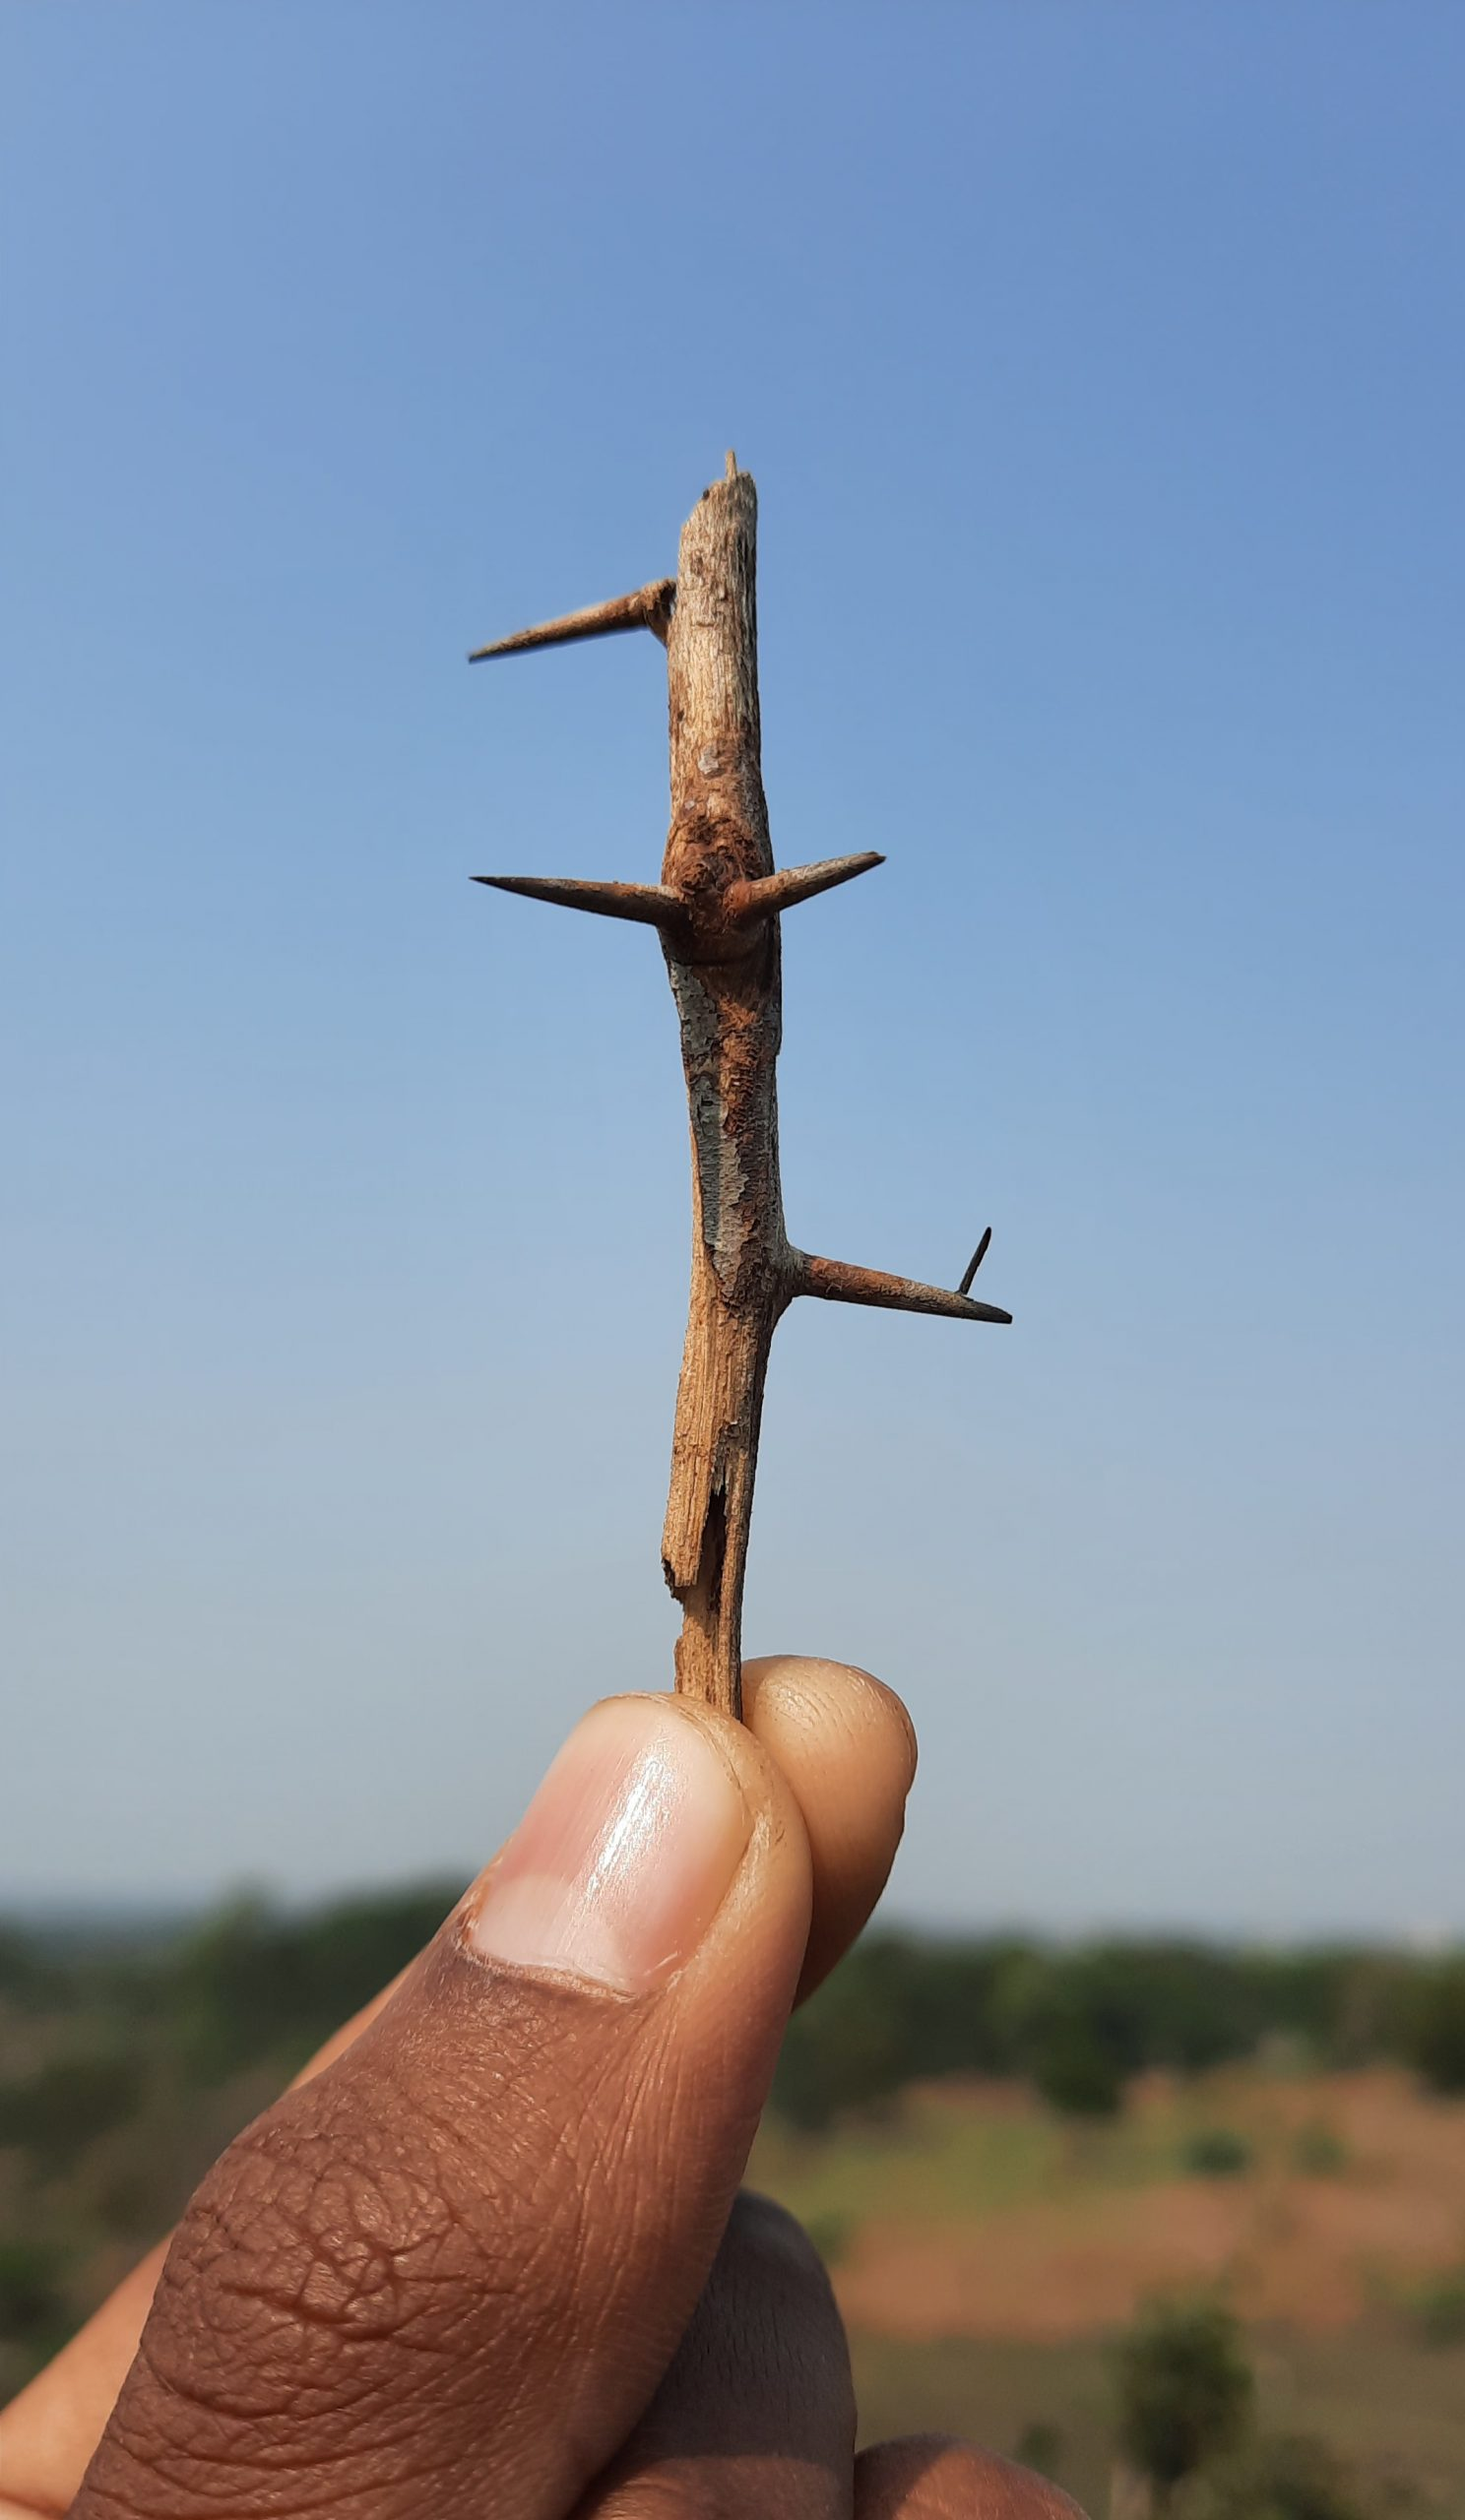 Thorn in hand